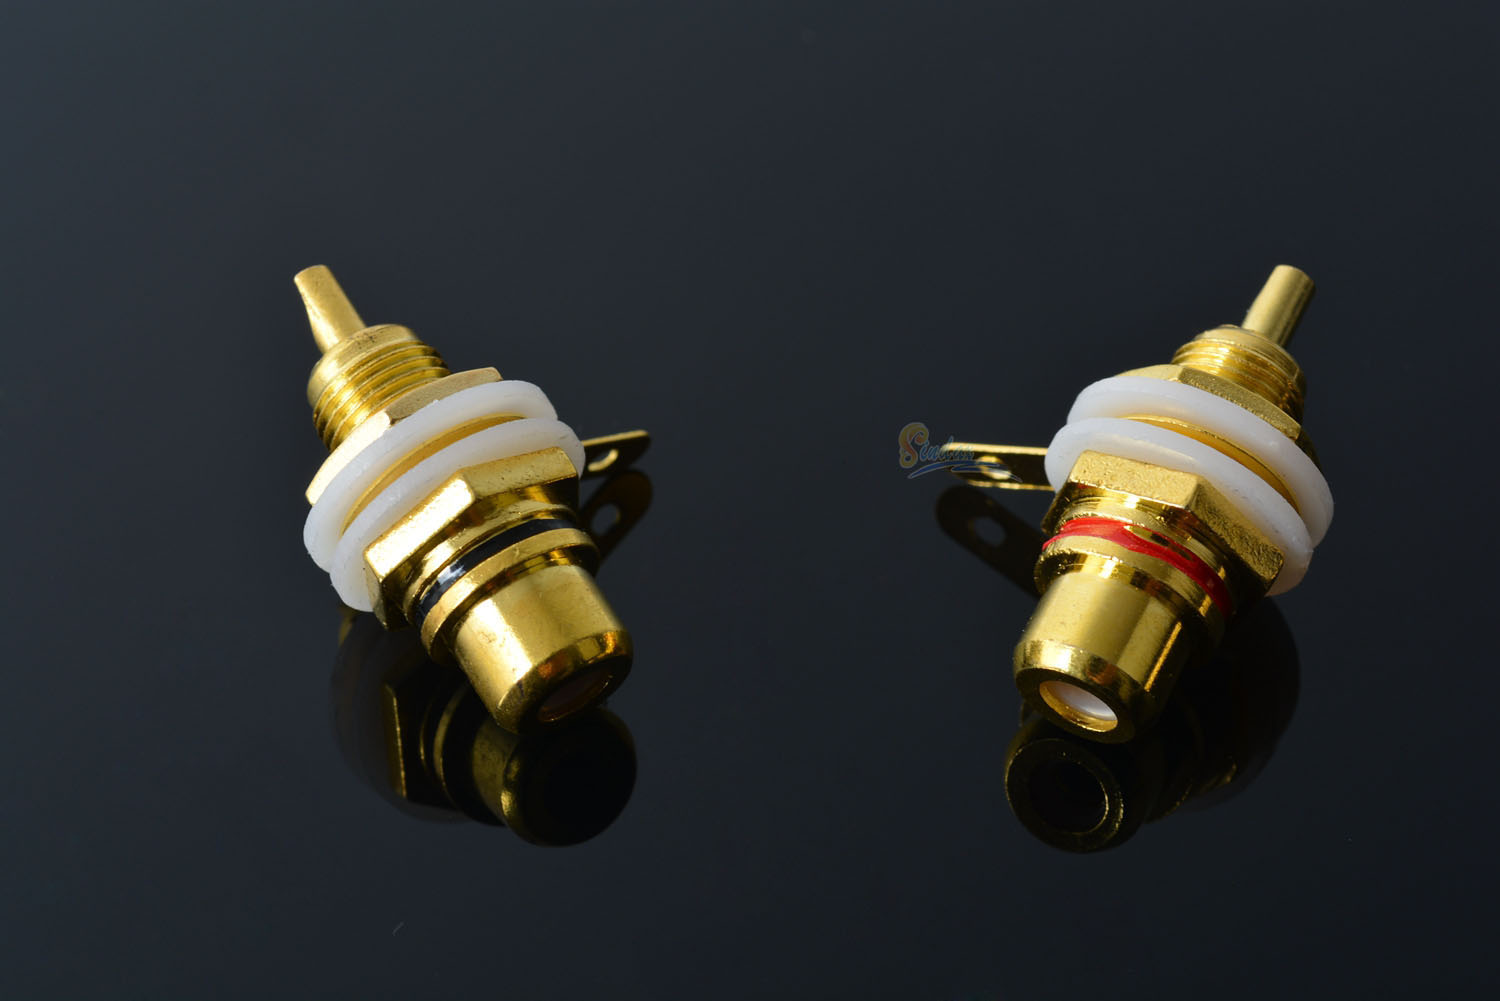 2pcs RCA Panel Mount connector RCA Female Socket rca Panel Mount Audio Socket Plug connector Bulkhead